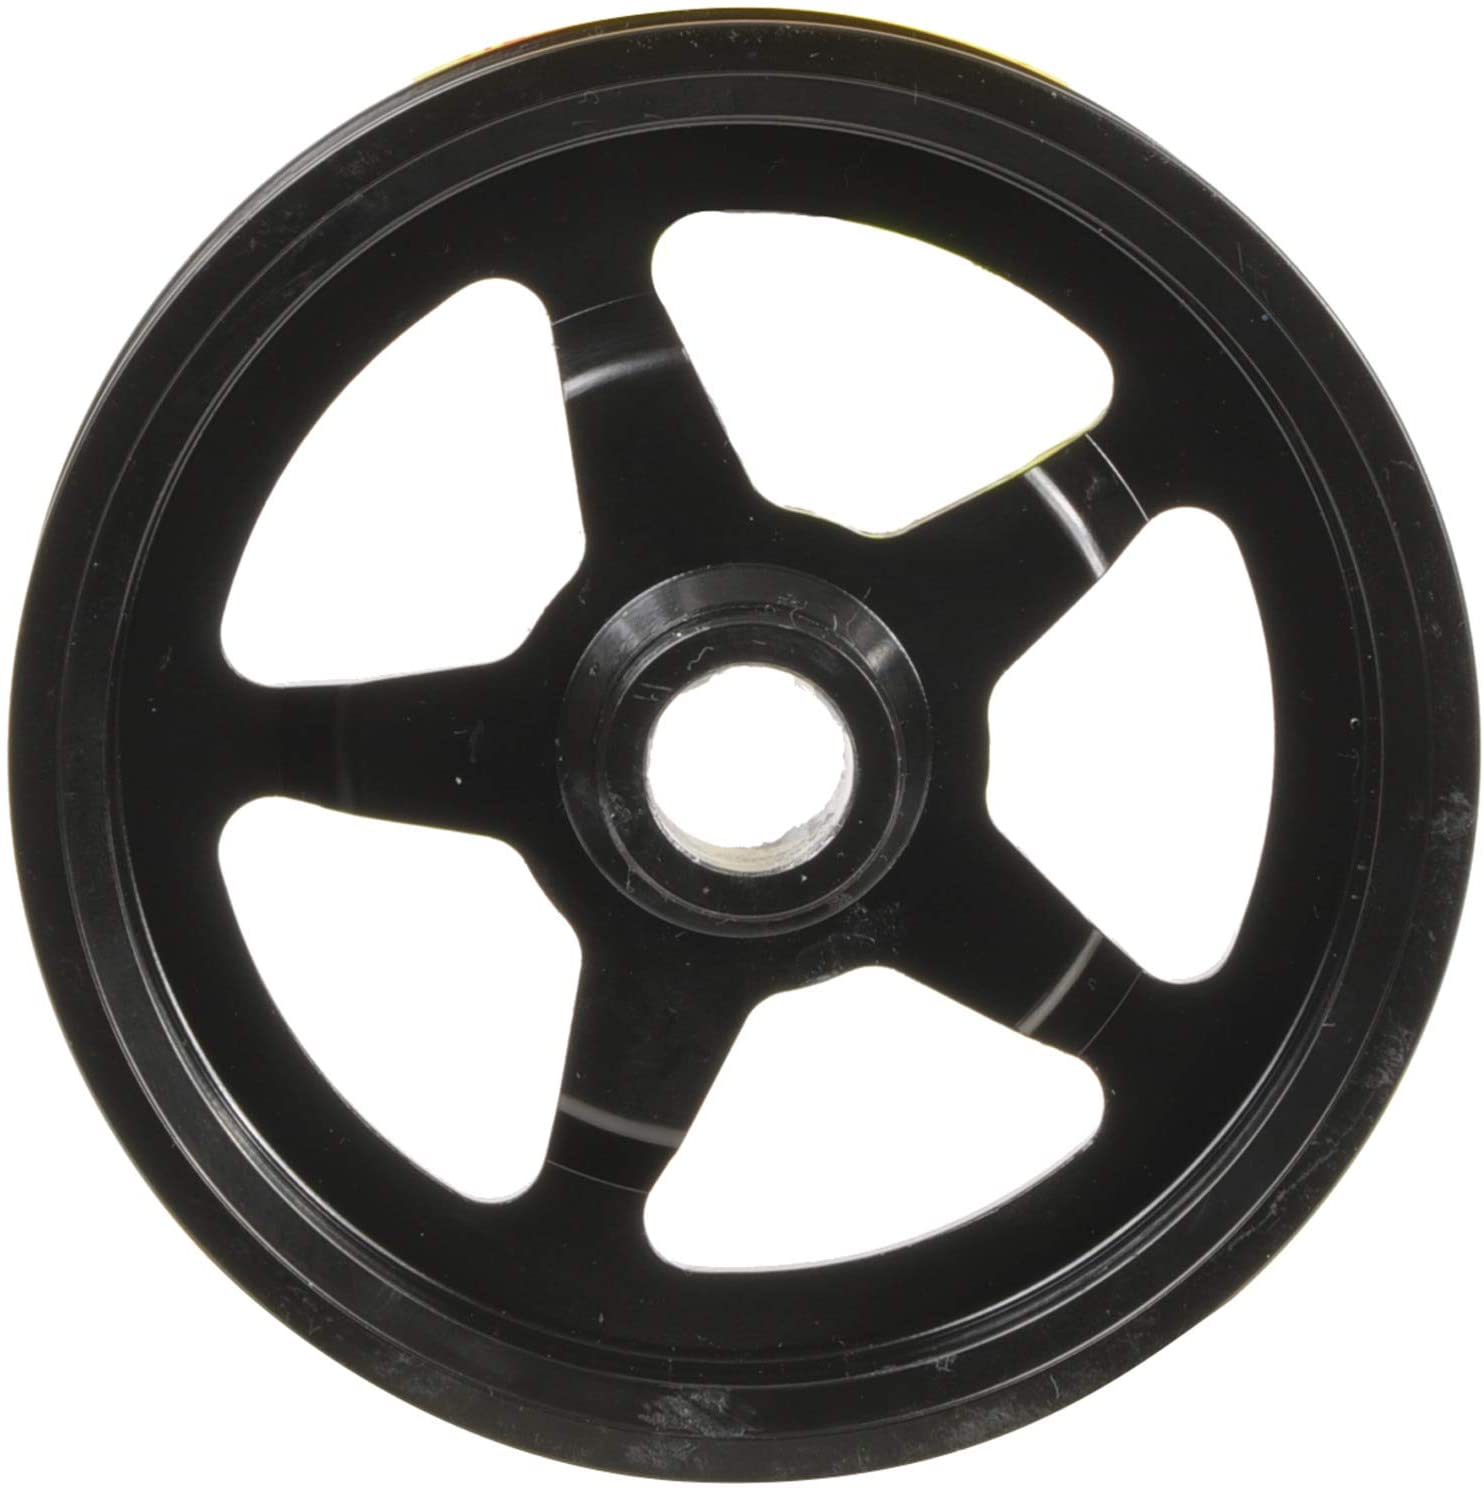 Cardone Select 3P-15128 New Power Steering Pulley, 1 Pack